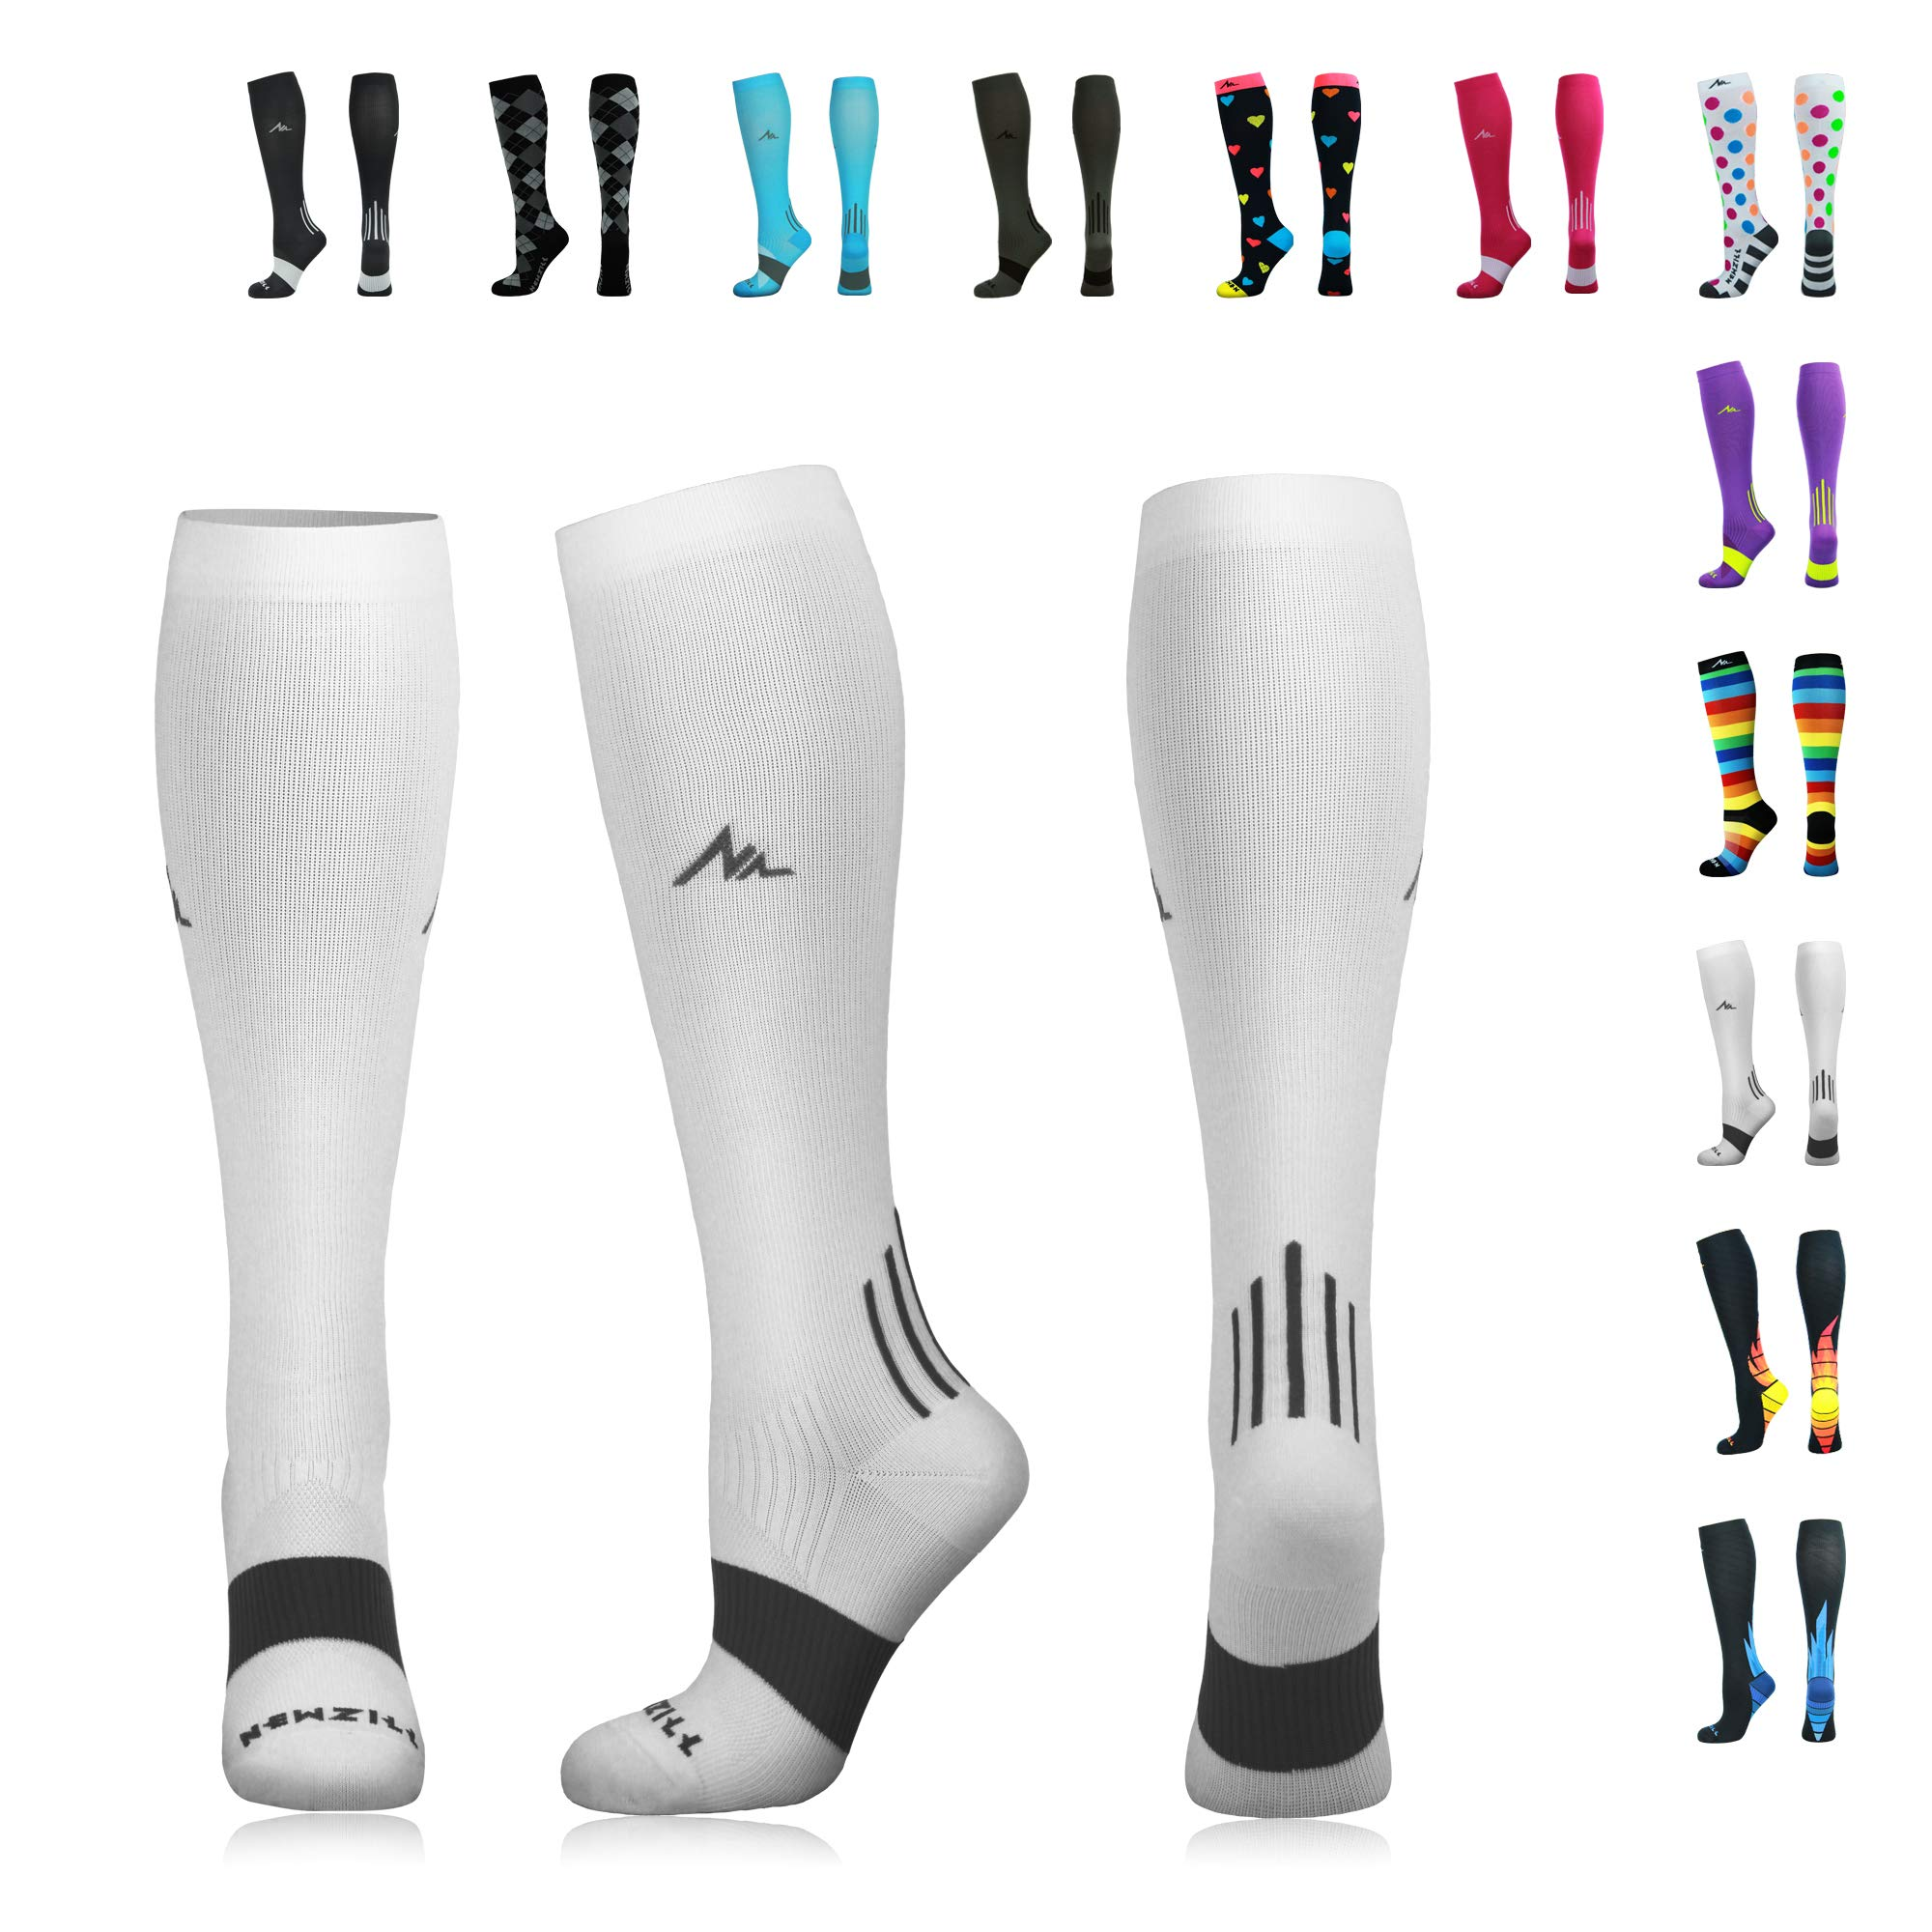 NEWZILL Compression Socks (20-30mmHg) for Men & Women - Best Stockings for Running, Medical, Athletic, Edema, Diabetic, Varicose Veins, Travel, Pregnancy, Shin Splints. White - Large (1 Pair)